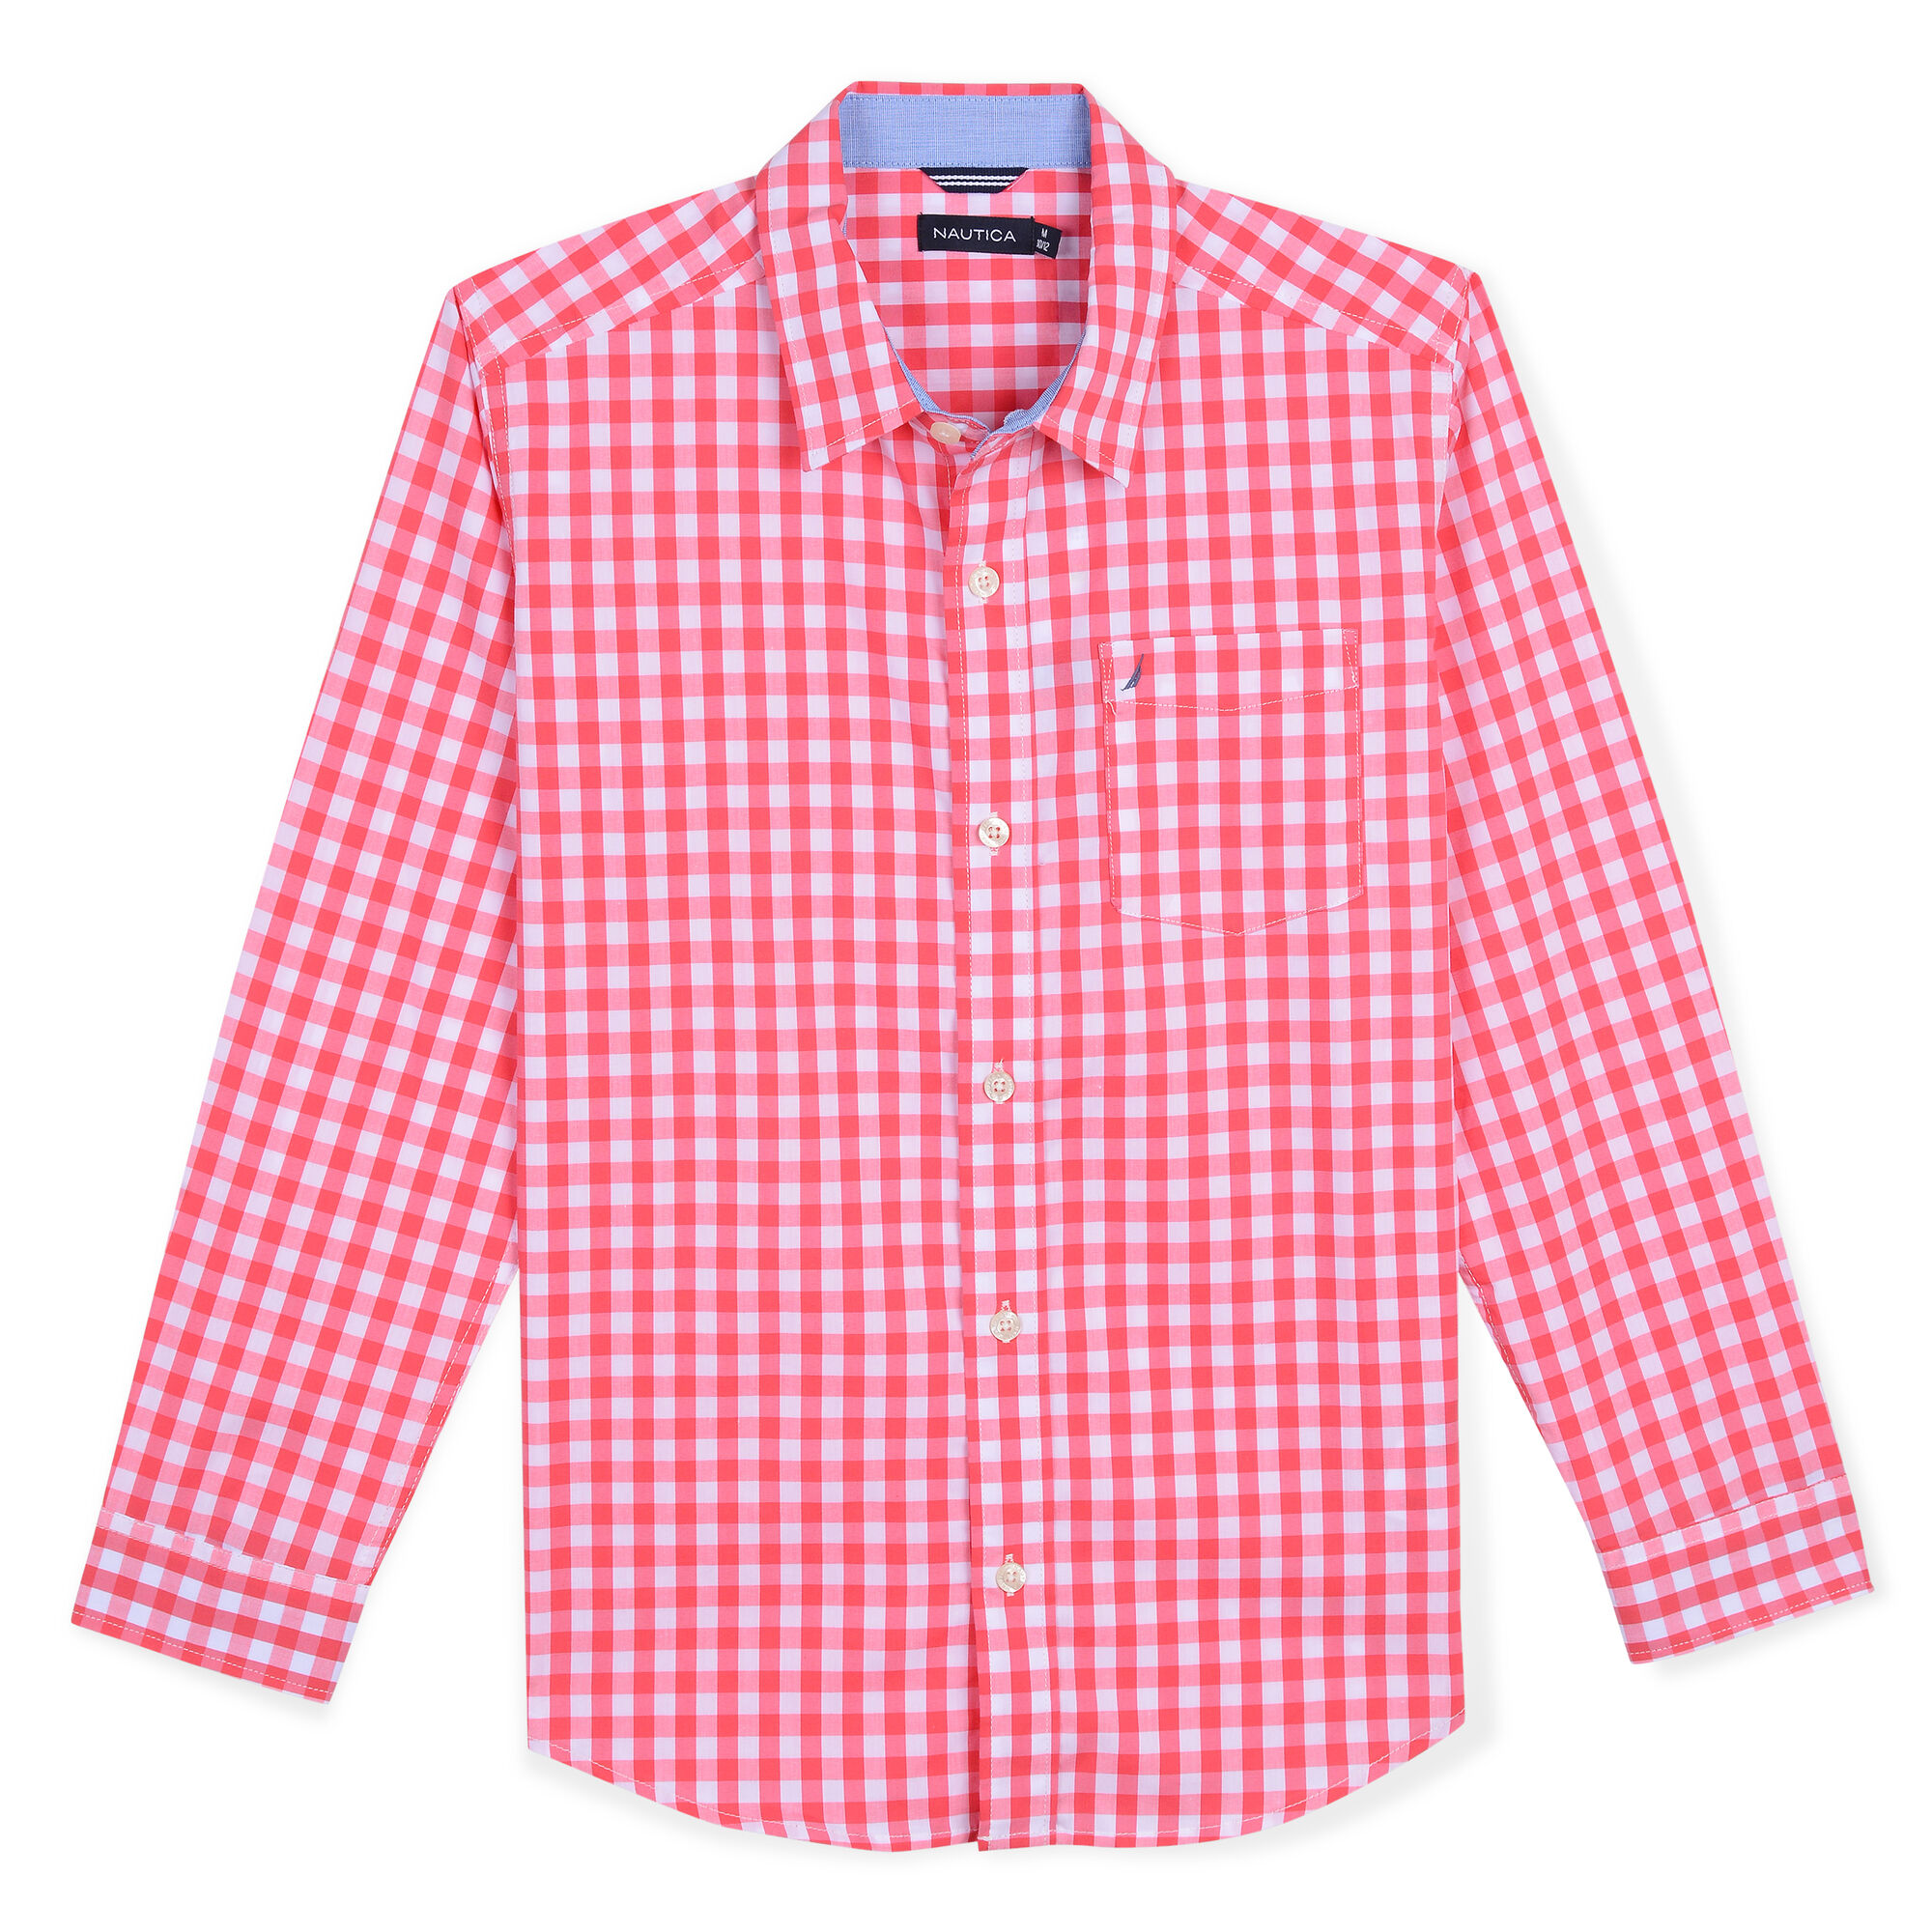 9de5470e2 Red Toddler Boy Dress Shirts – EDGE Engineering and Consulting Limited